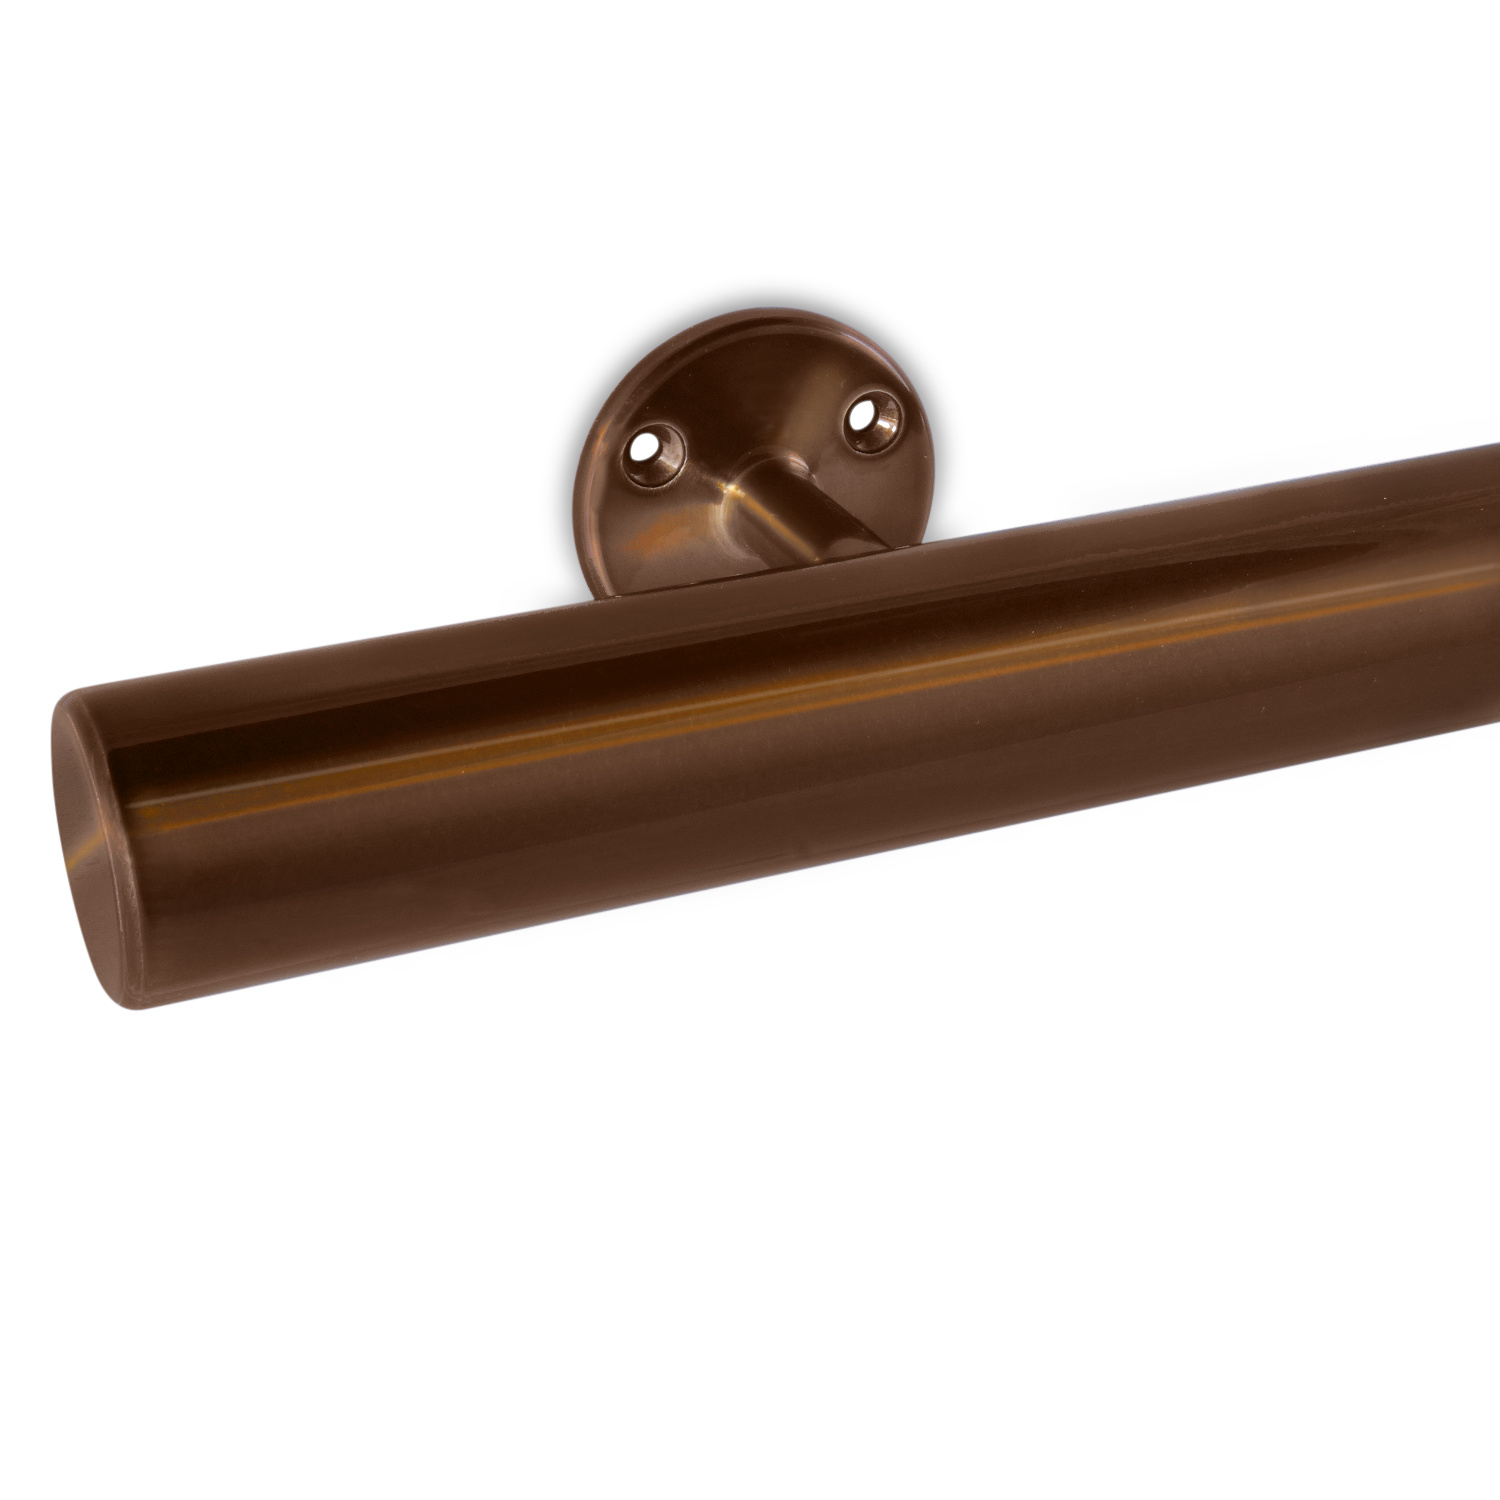 Trapleuning brons gecoat rond incl. dragers TYPE 4 - messing - goud - brons poedercoating